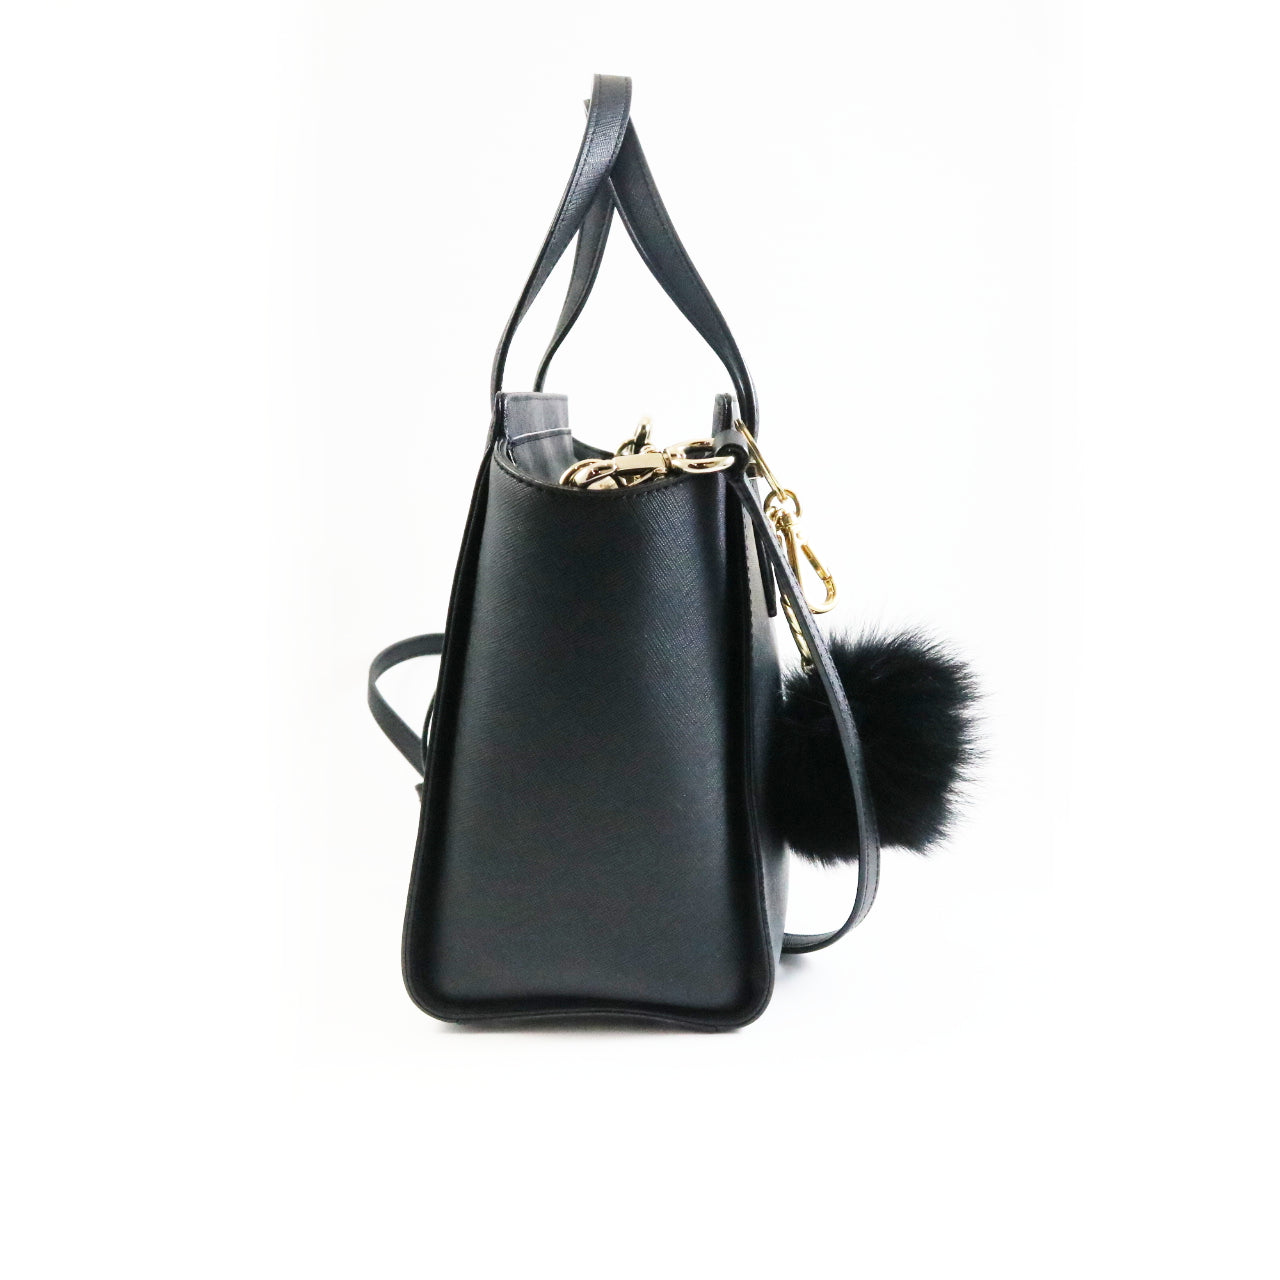 Black Satchel With Pom Pom